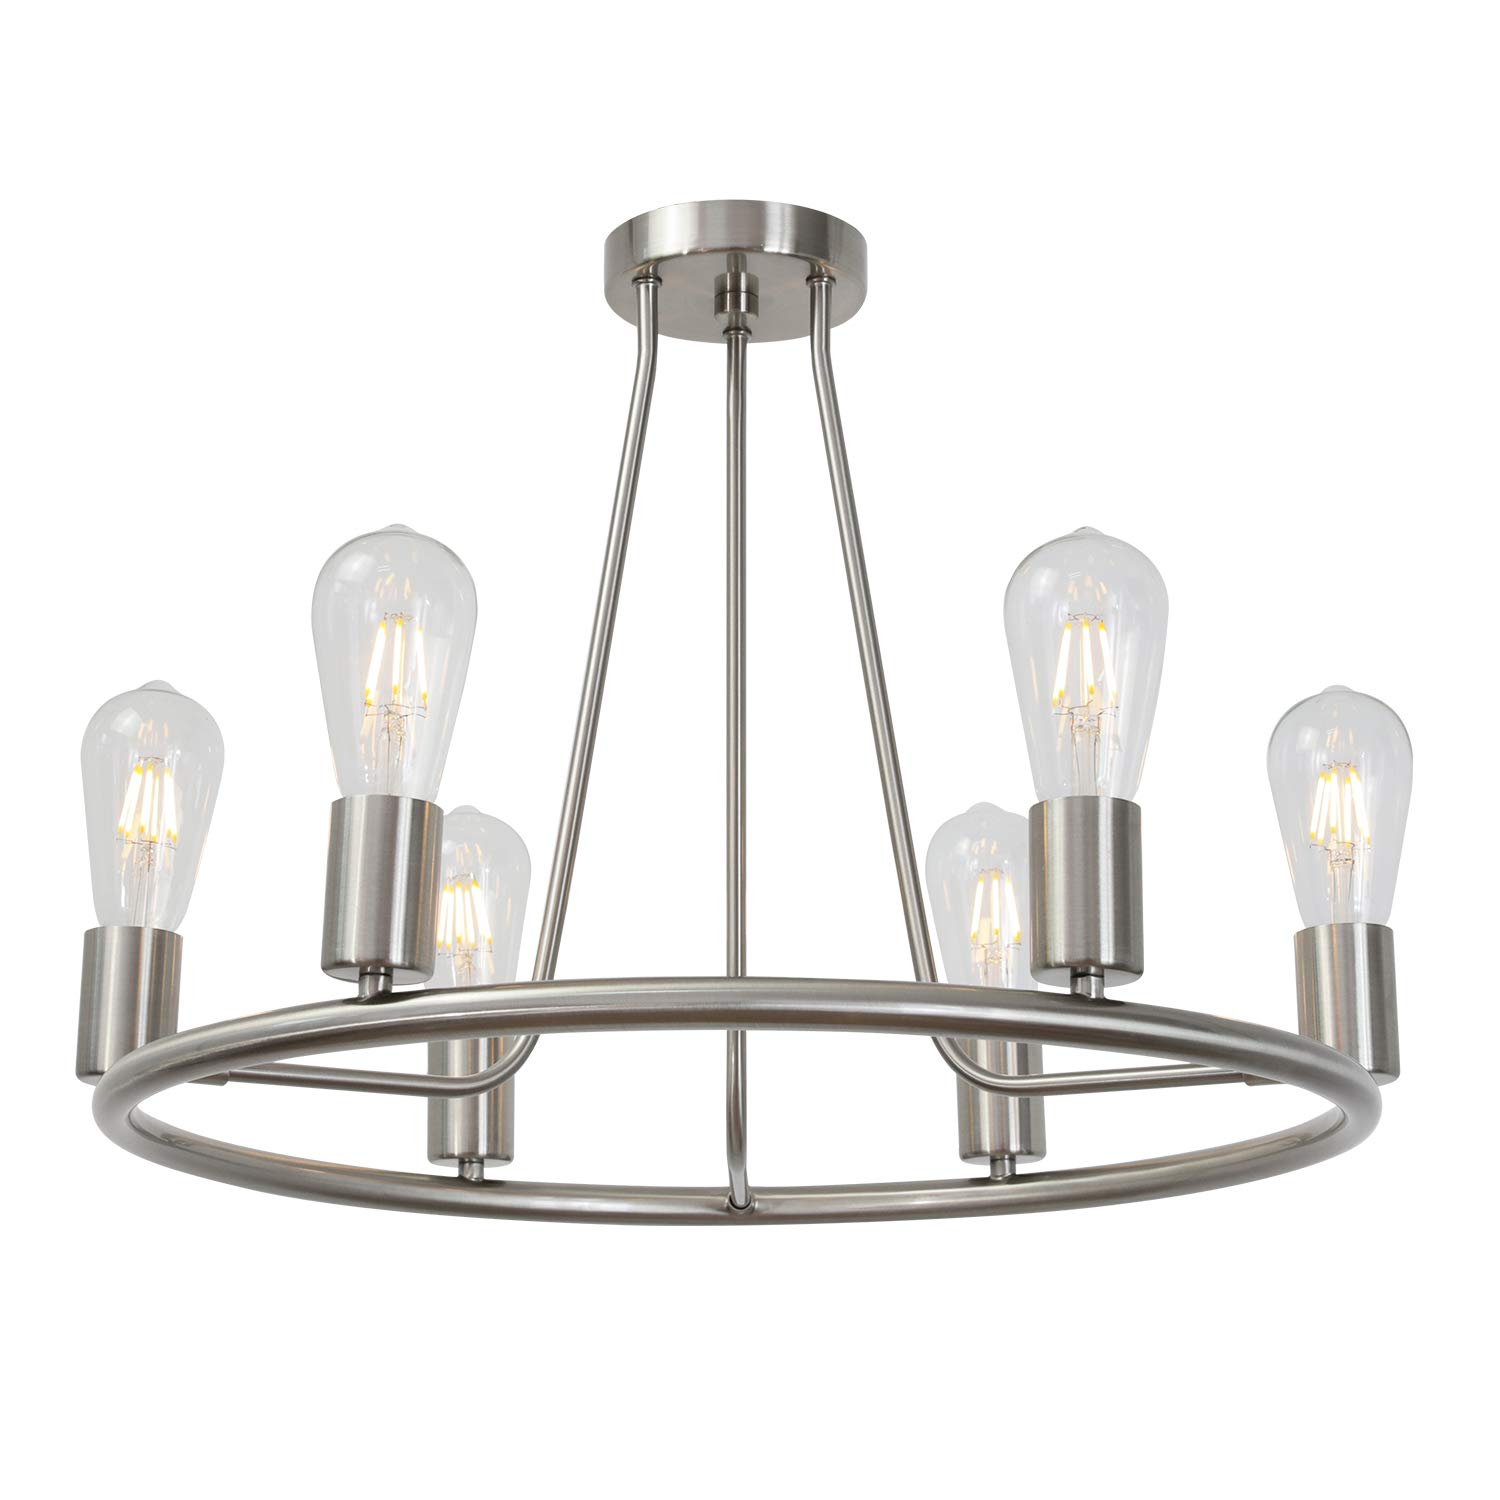 Bonlicht round farmhouse chandelier lighting 6 light modern indoor ceiling lights brushed nickel mid century flush mount light fixtures ceiling